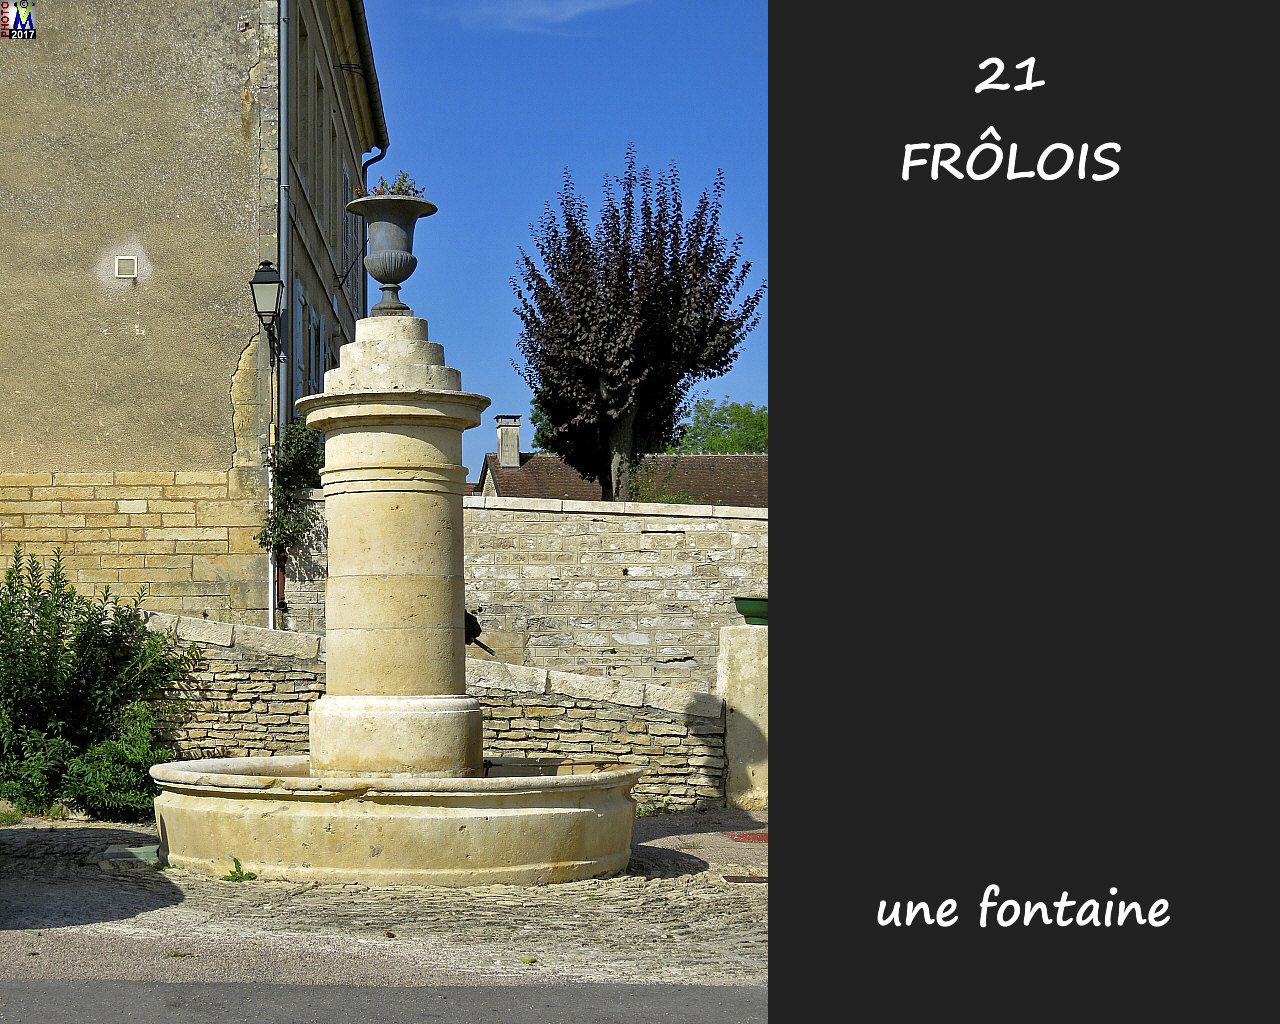 21FROLOIS_fontaine_100.jpg